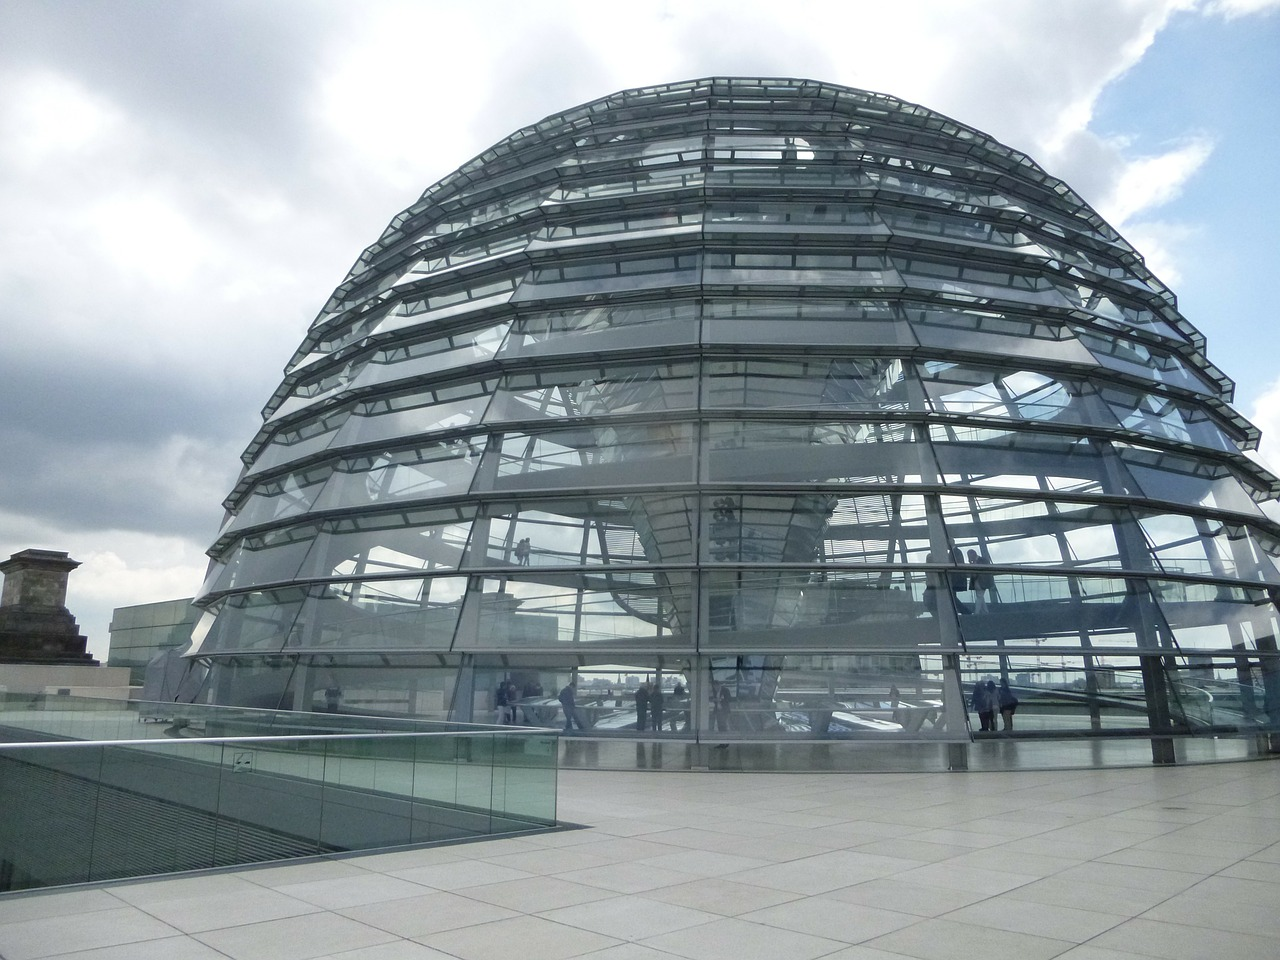 glass dome bundestag reichstag free photo